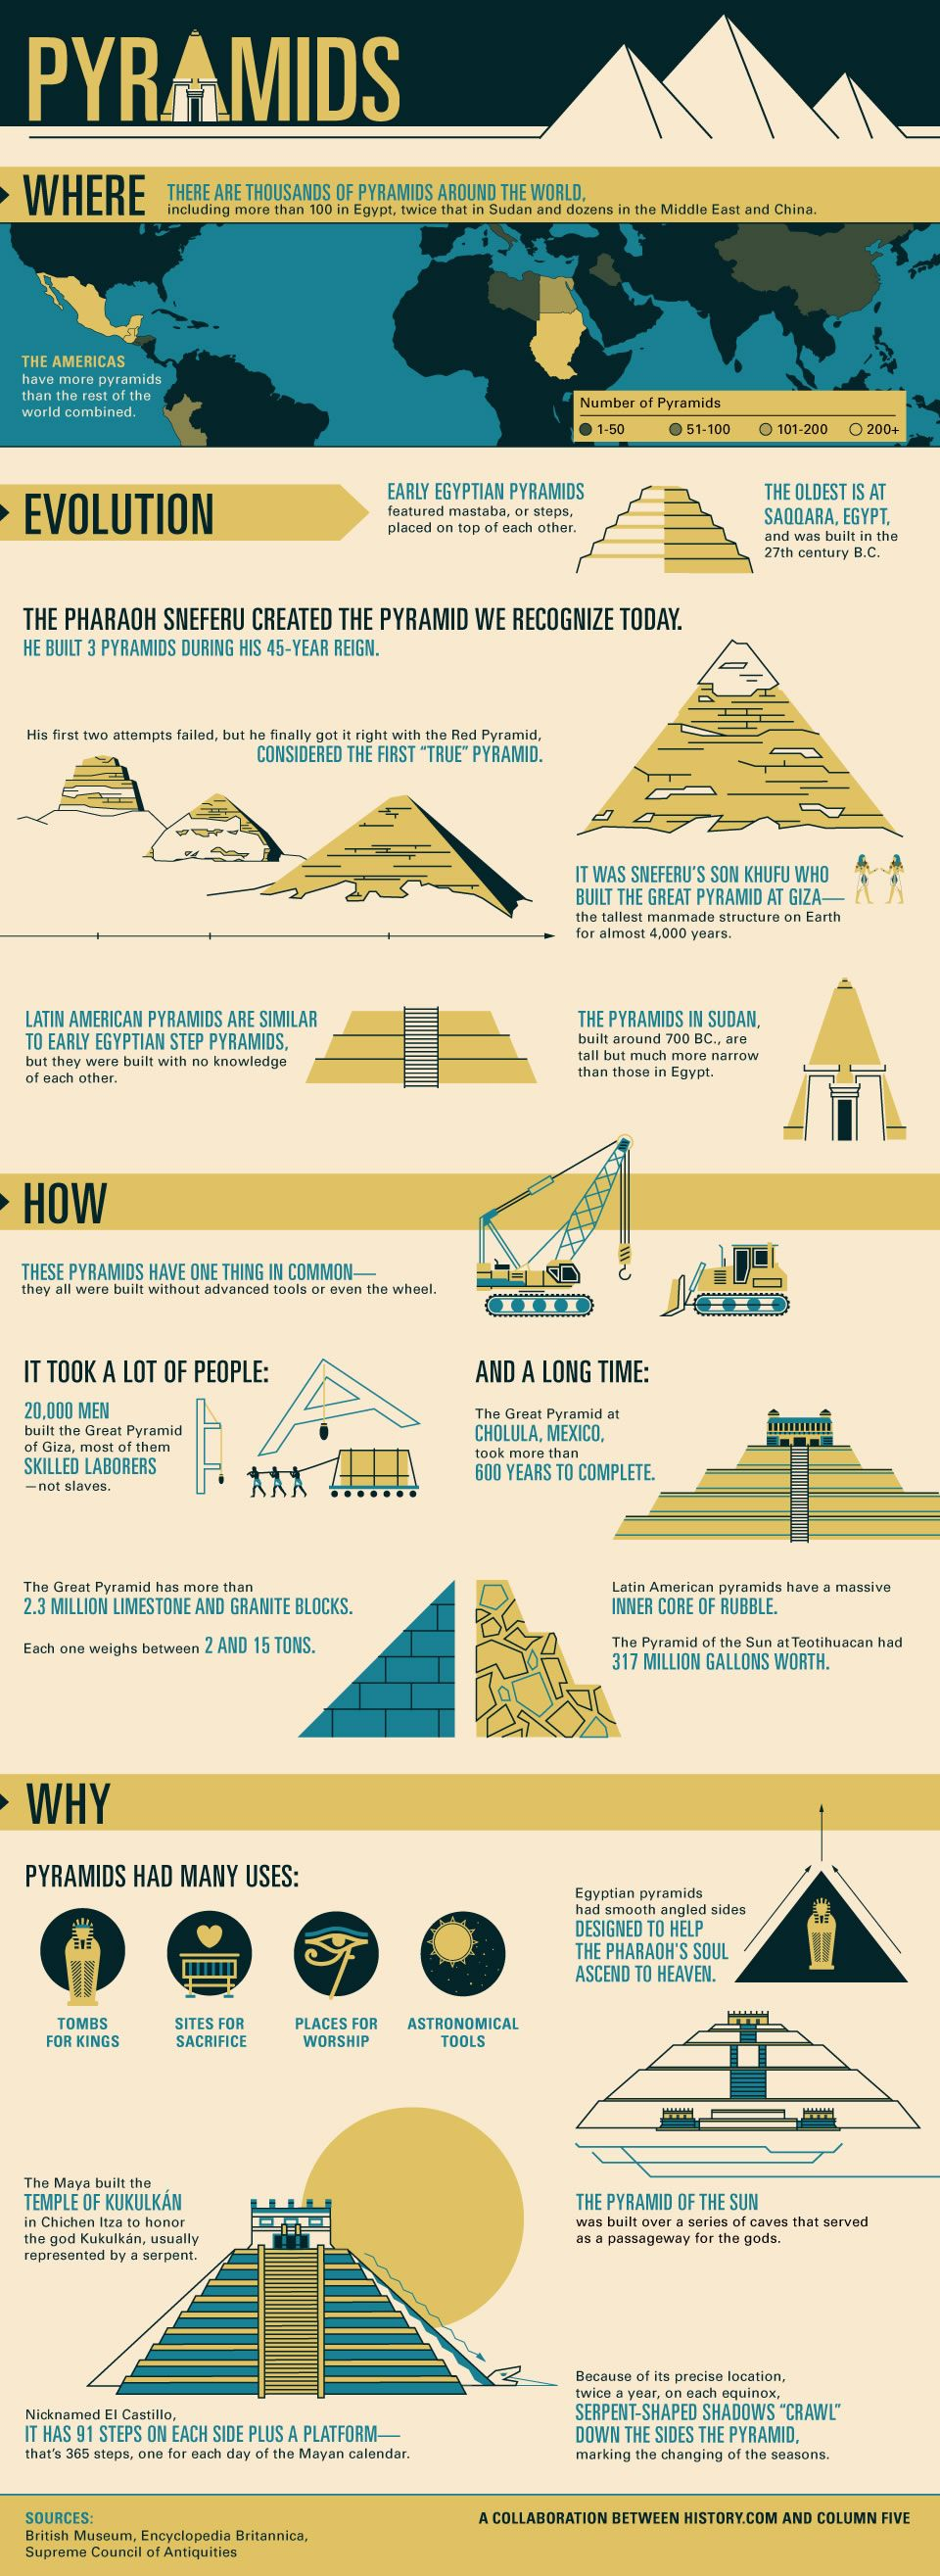 History of Pyramids #infographic